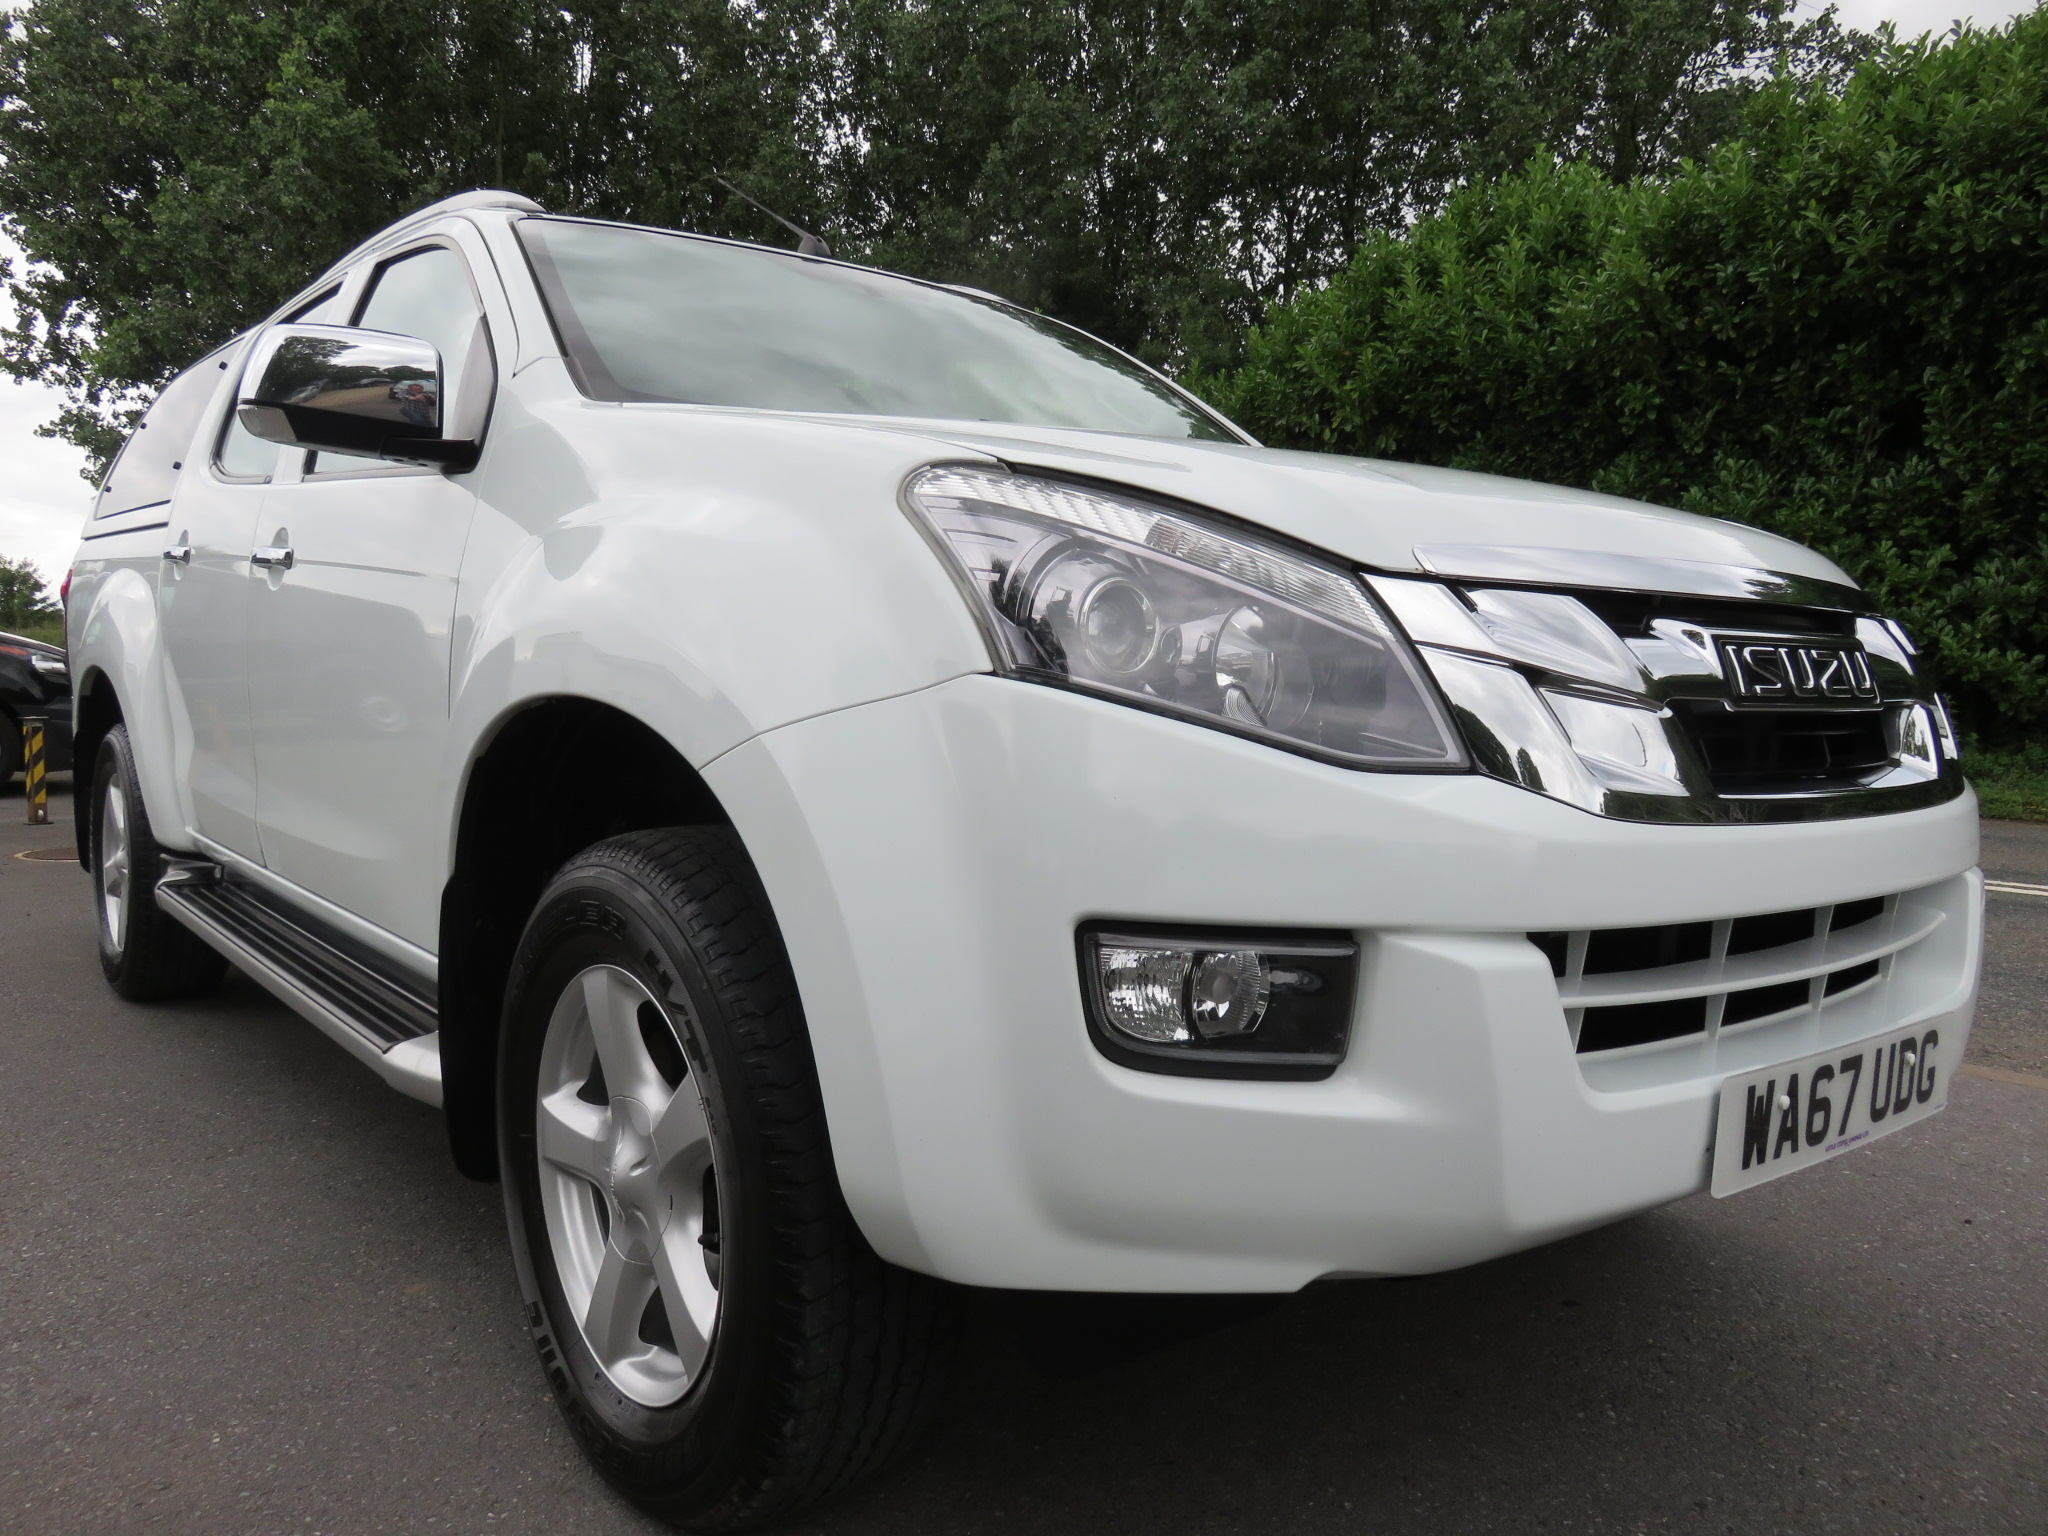 Used Isuzu D-Max Utah D/C Twin Turbo Pick Up Pick-Up 4x4 for sale in Exeter, Devon